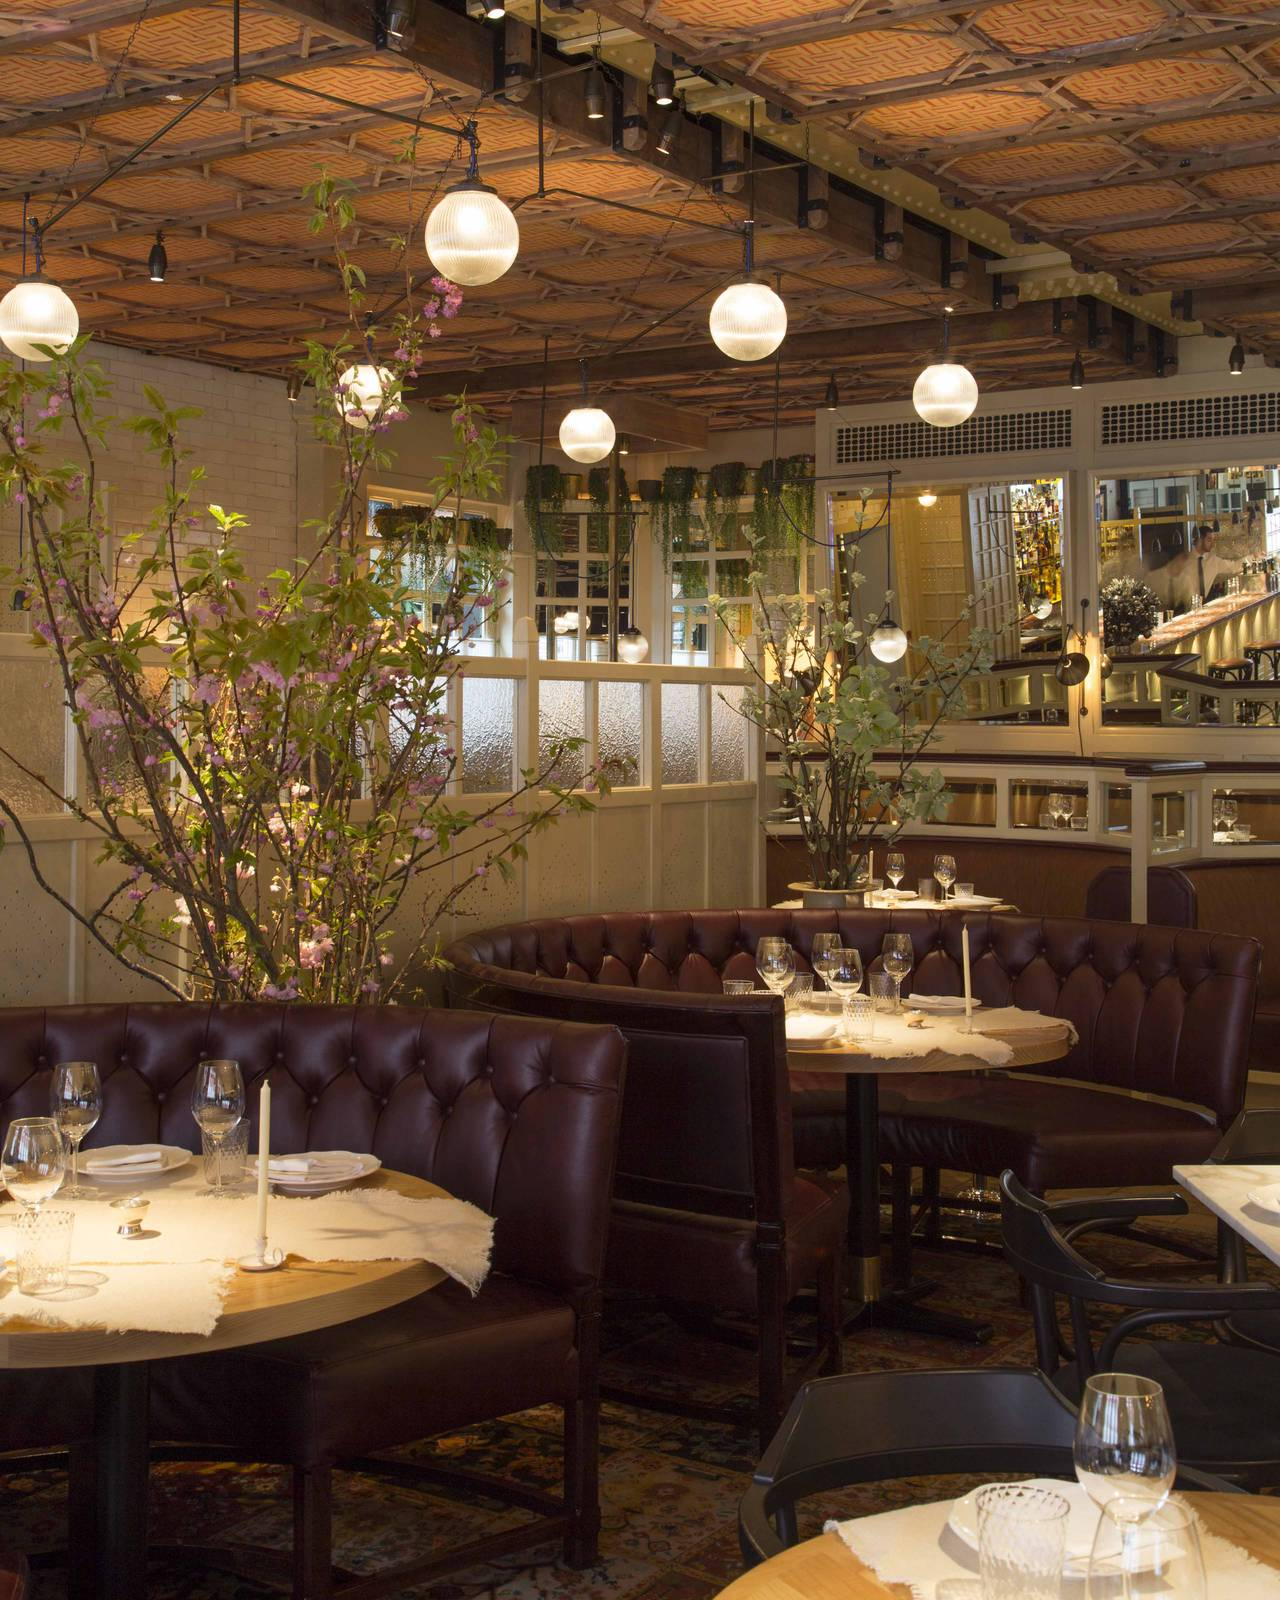 Chiltern Firehouse blogger review